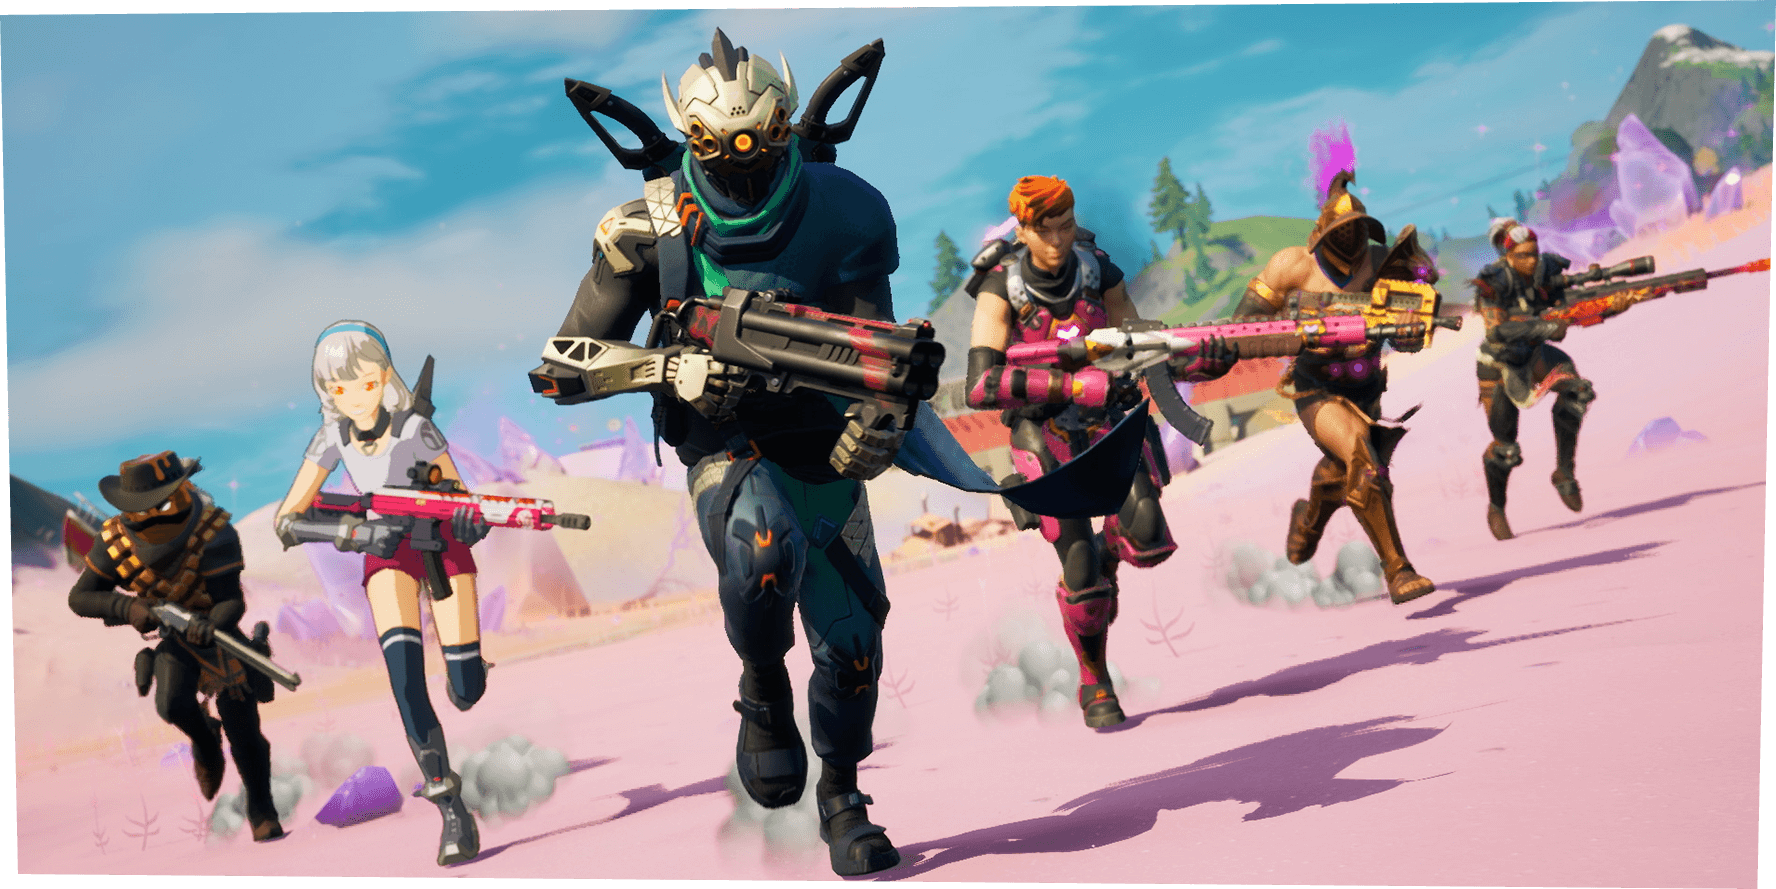 Fortnite Chapter 2 Season 5 The Zero Point Overview Fortnite To see the page that showcases all cosmetics released in chapter 2: fortnite chapter 2 season 5 the zero